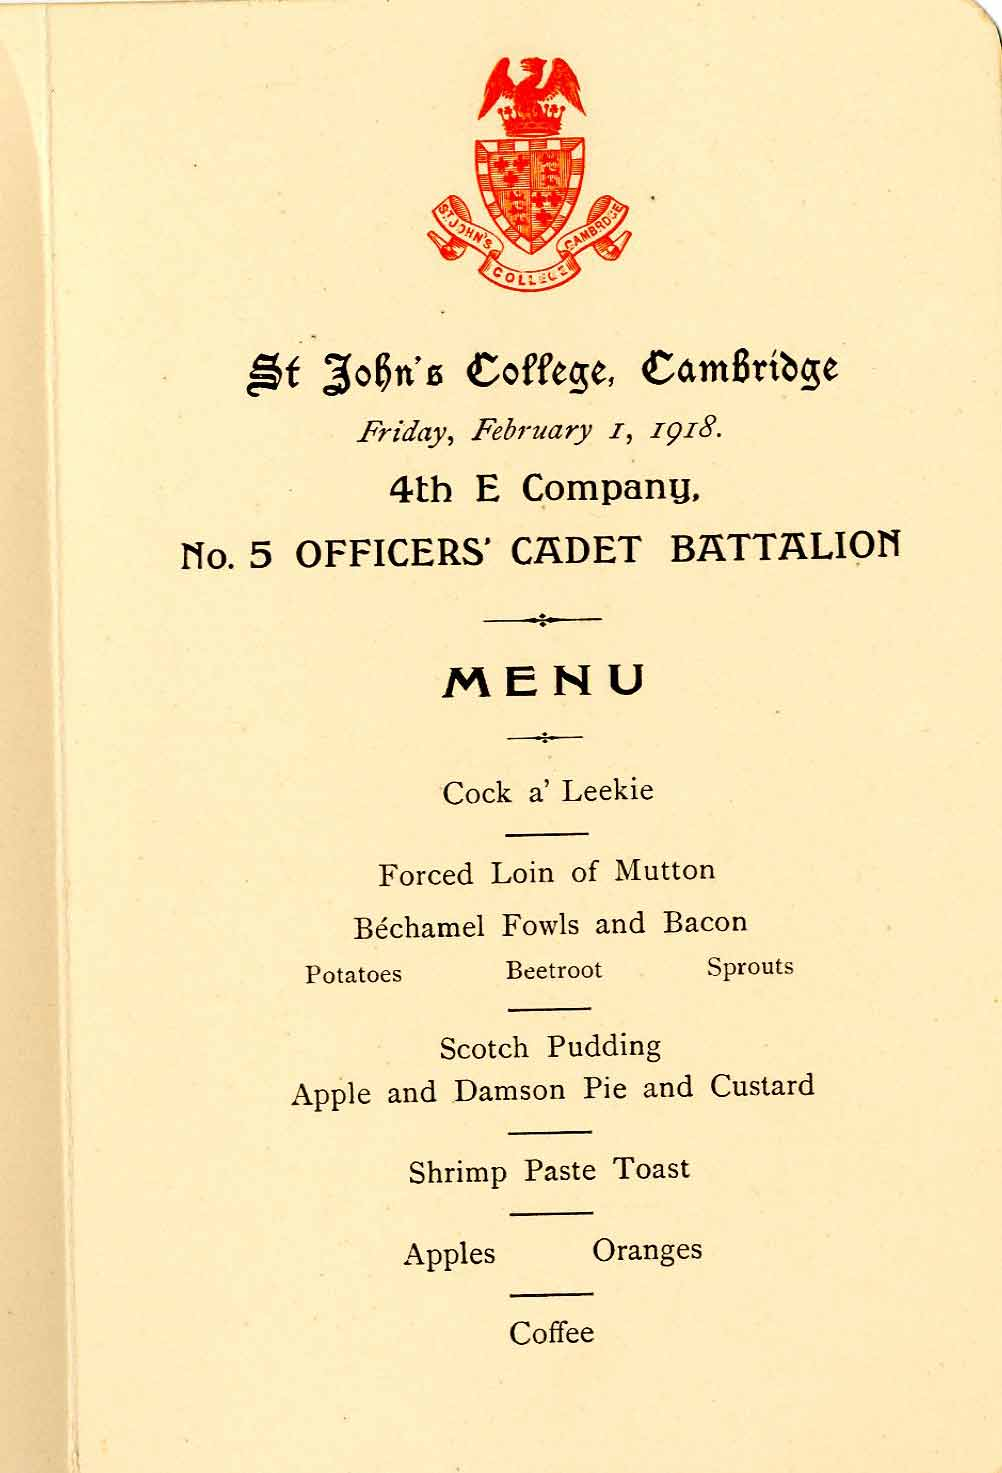 WW1 Cadet Battalion dinner menu